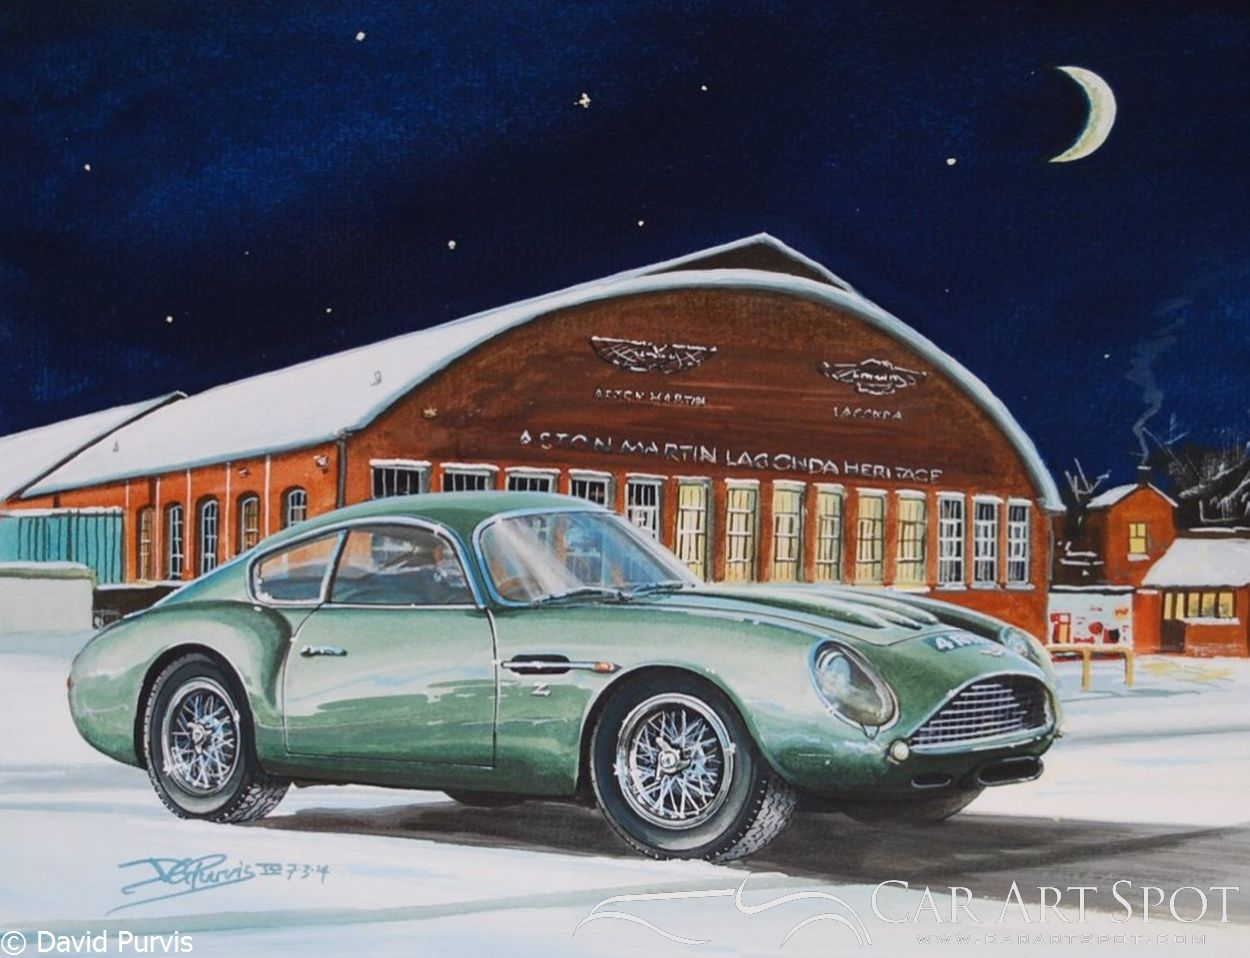 Aston Martin DB4 Zagato Winter Works Service by David Purvis